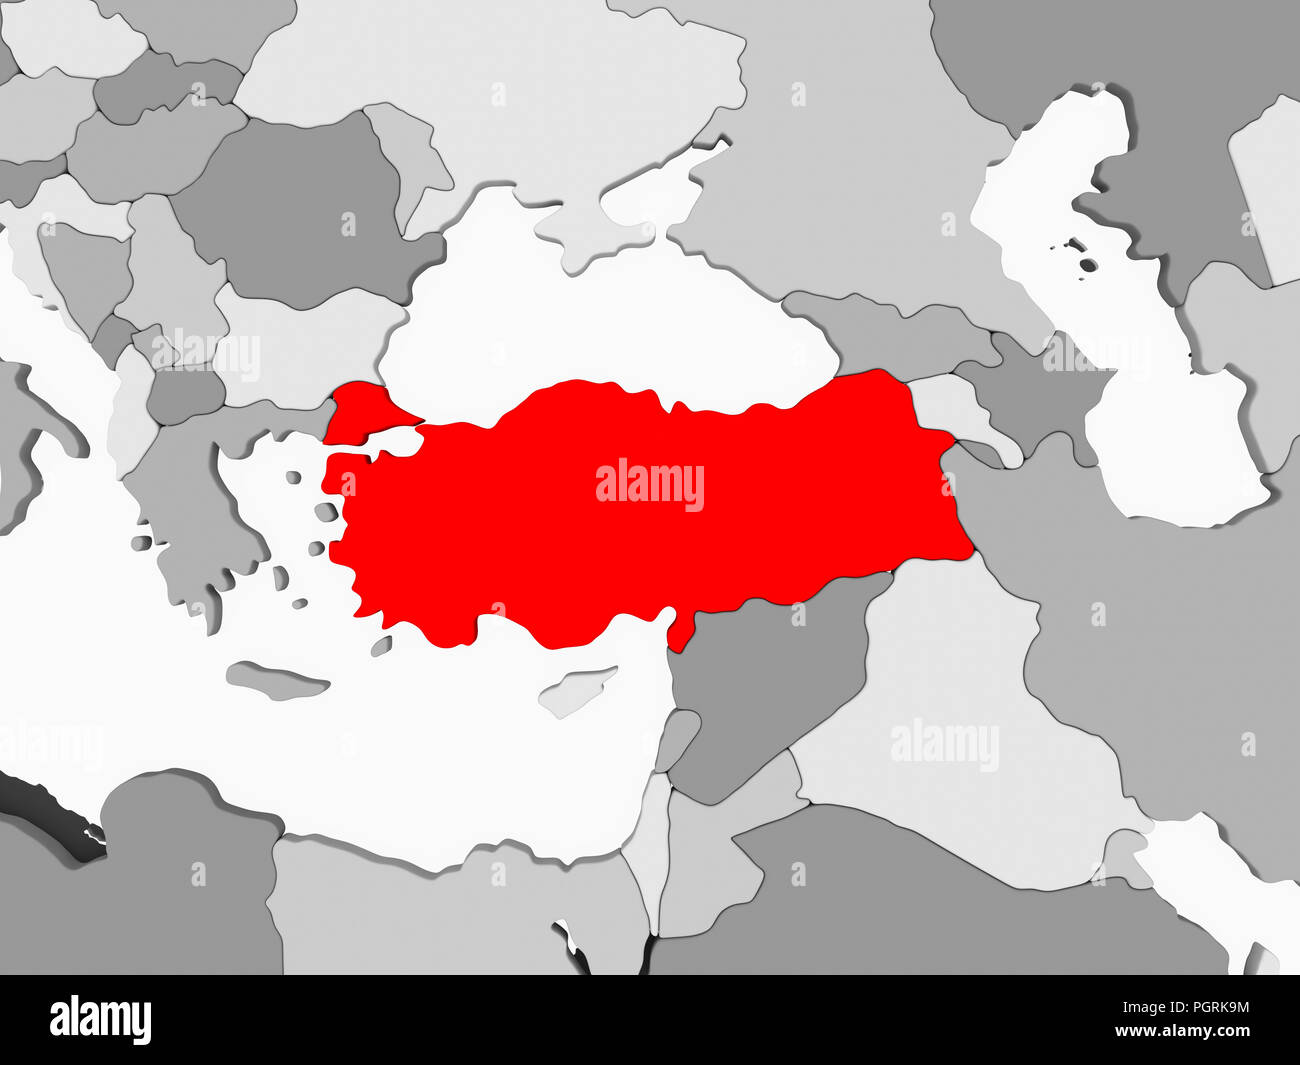 Turkey In Red On Grey Political Map With Transparent Oceans 3d